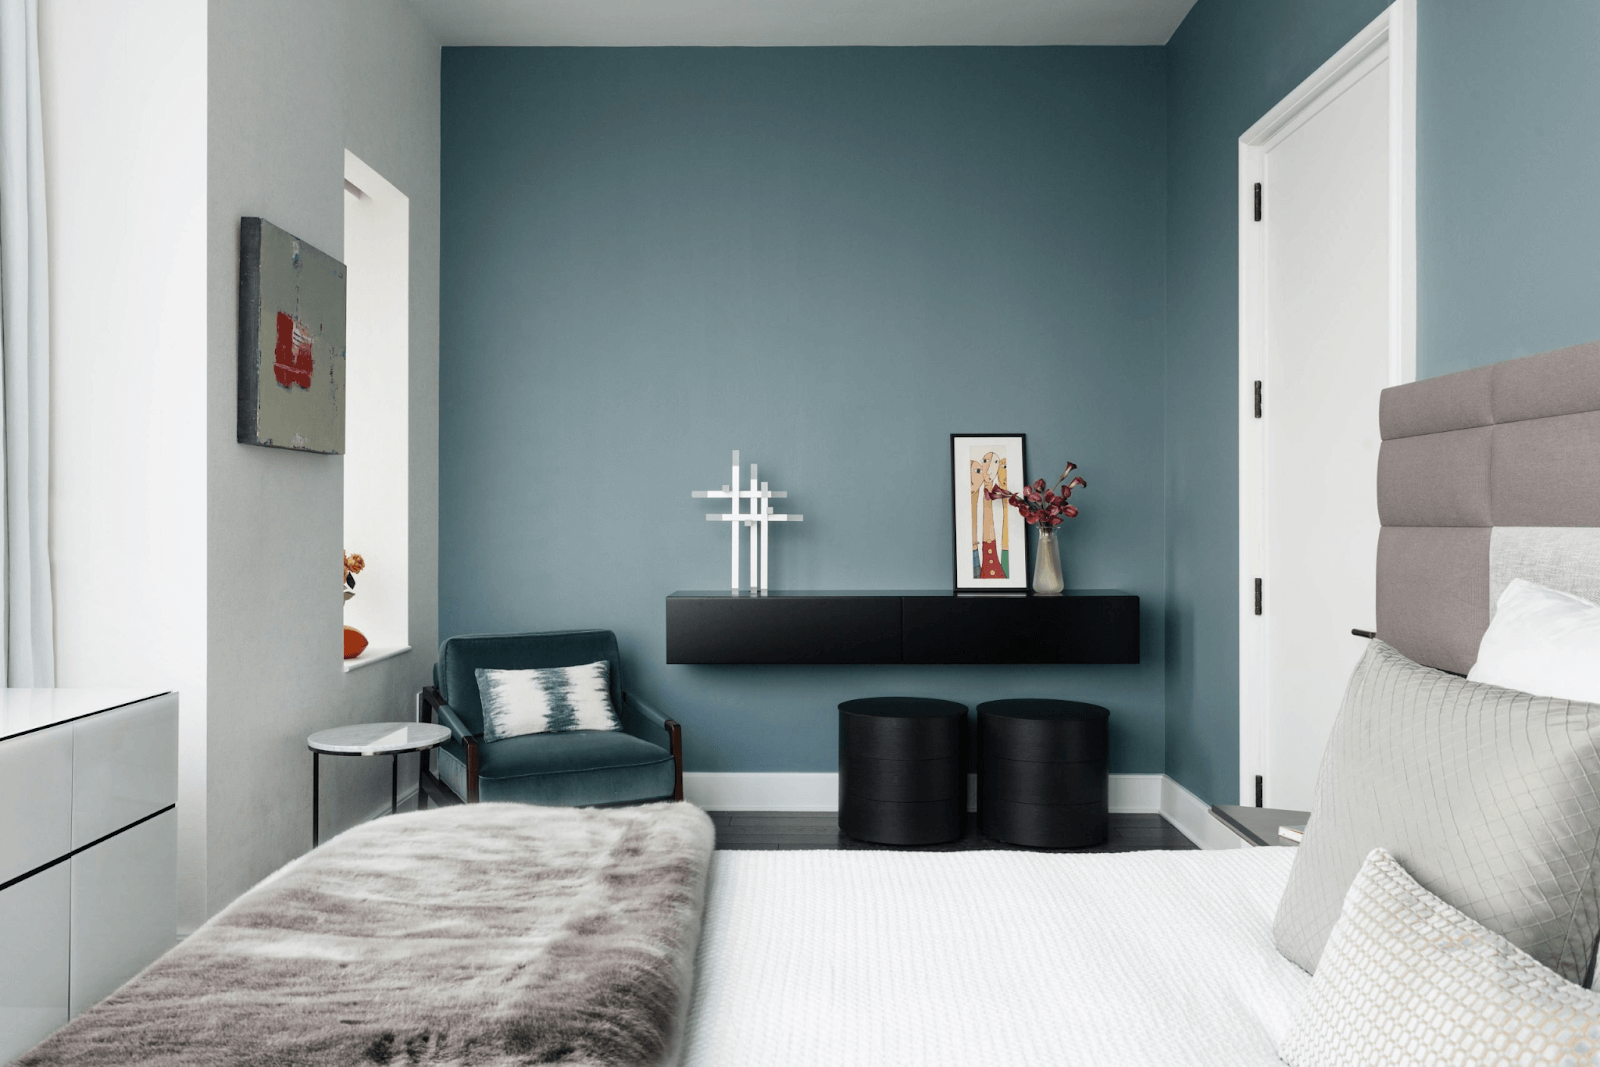 Working with colors: Home's interior